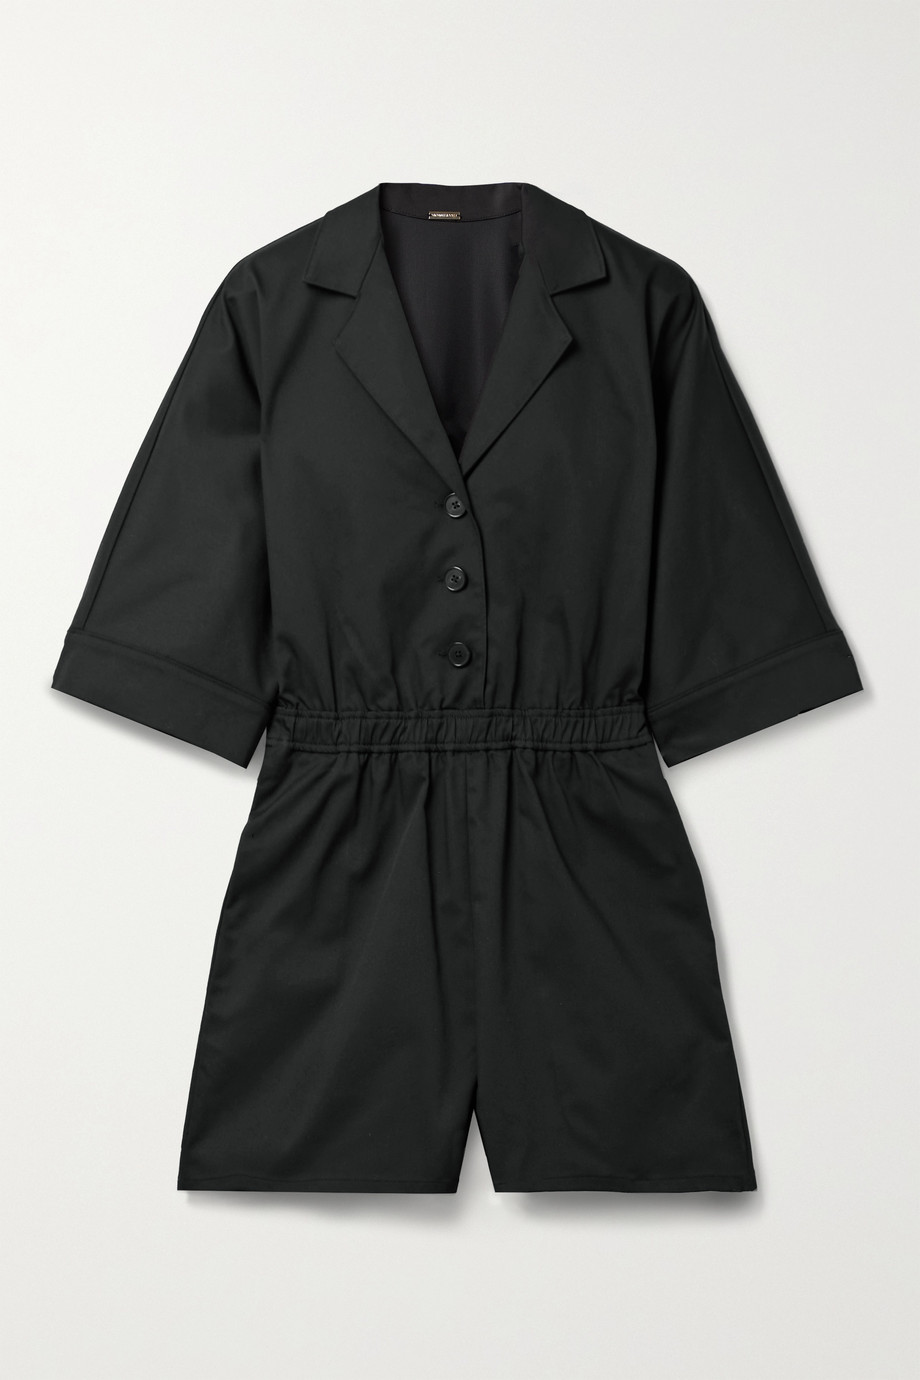 Adam Lippes Cotton-blend twill playsuit